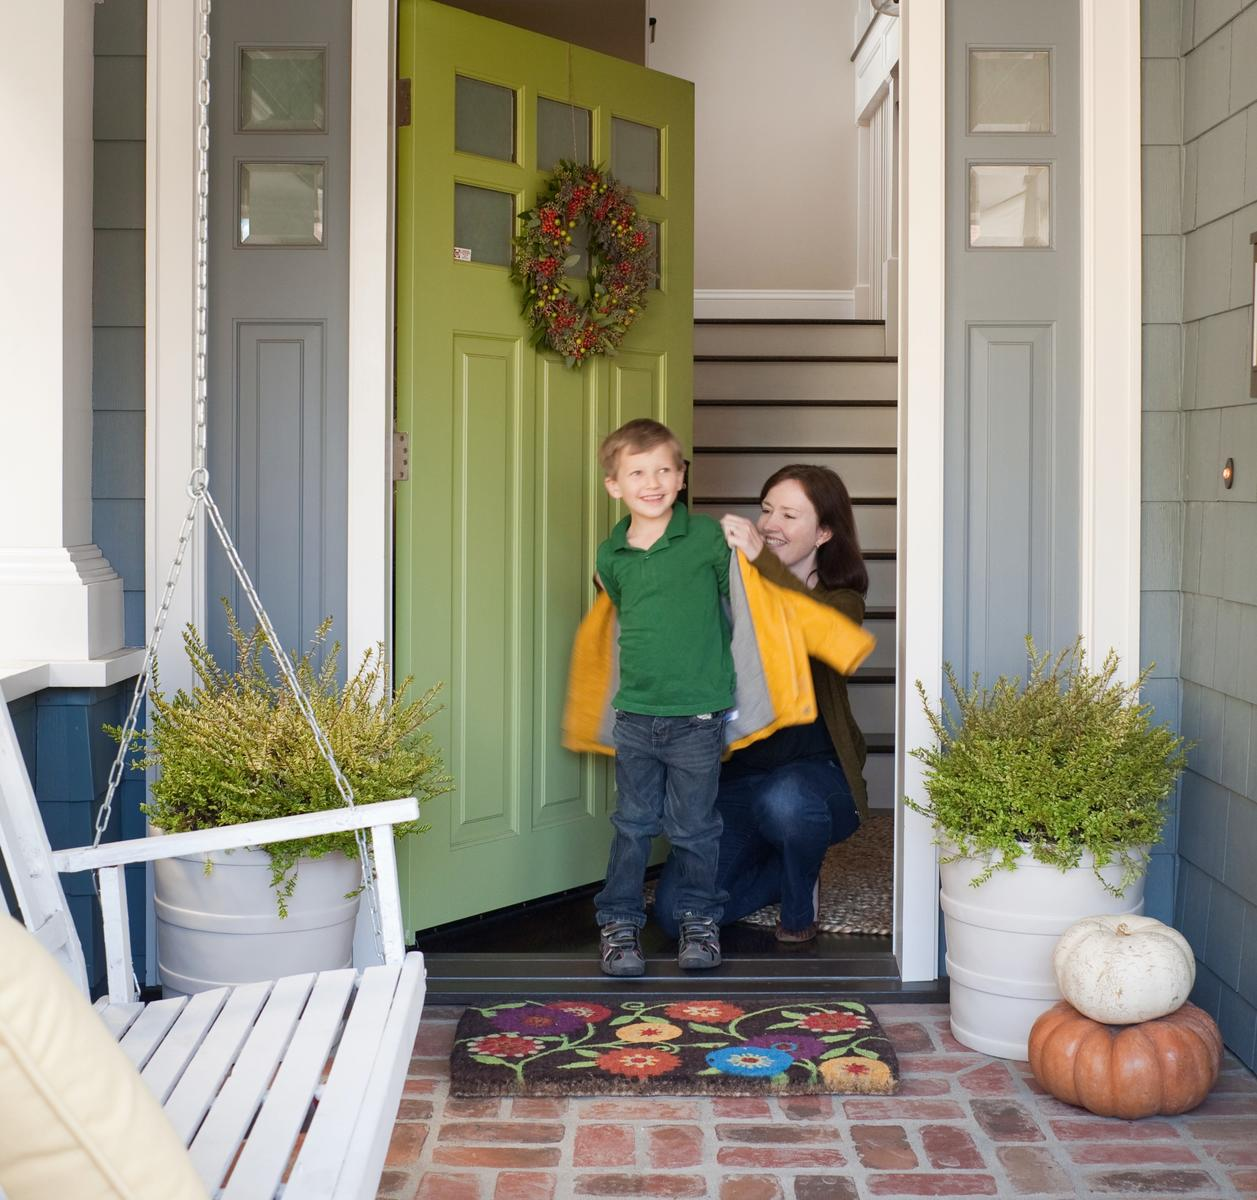 Mom Putting Jacket On Son Walking Out The Door